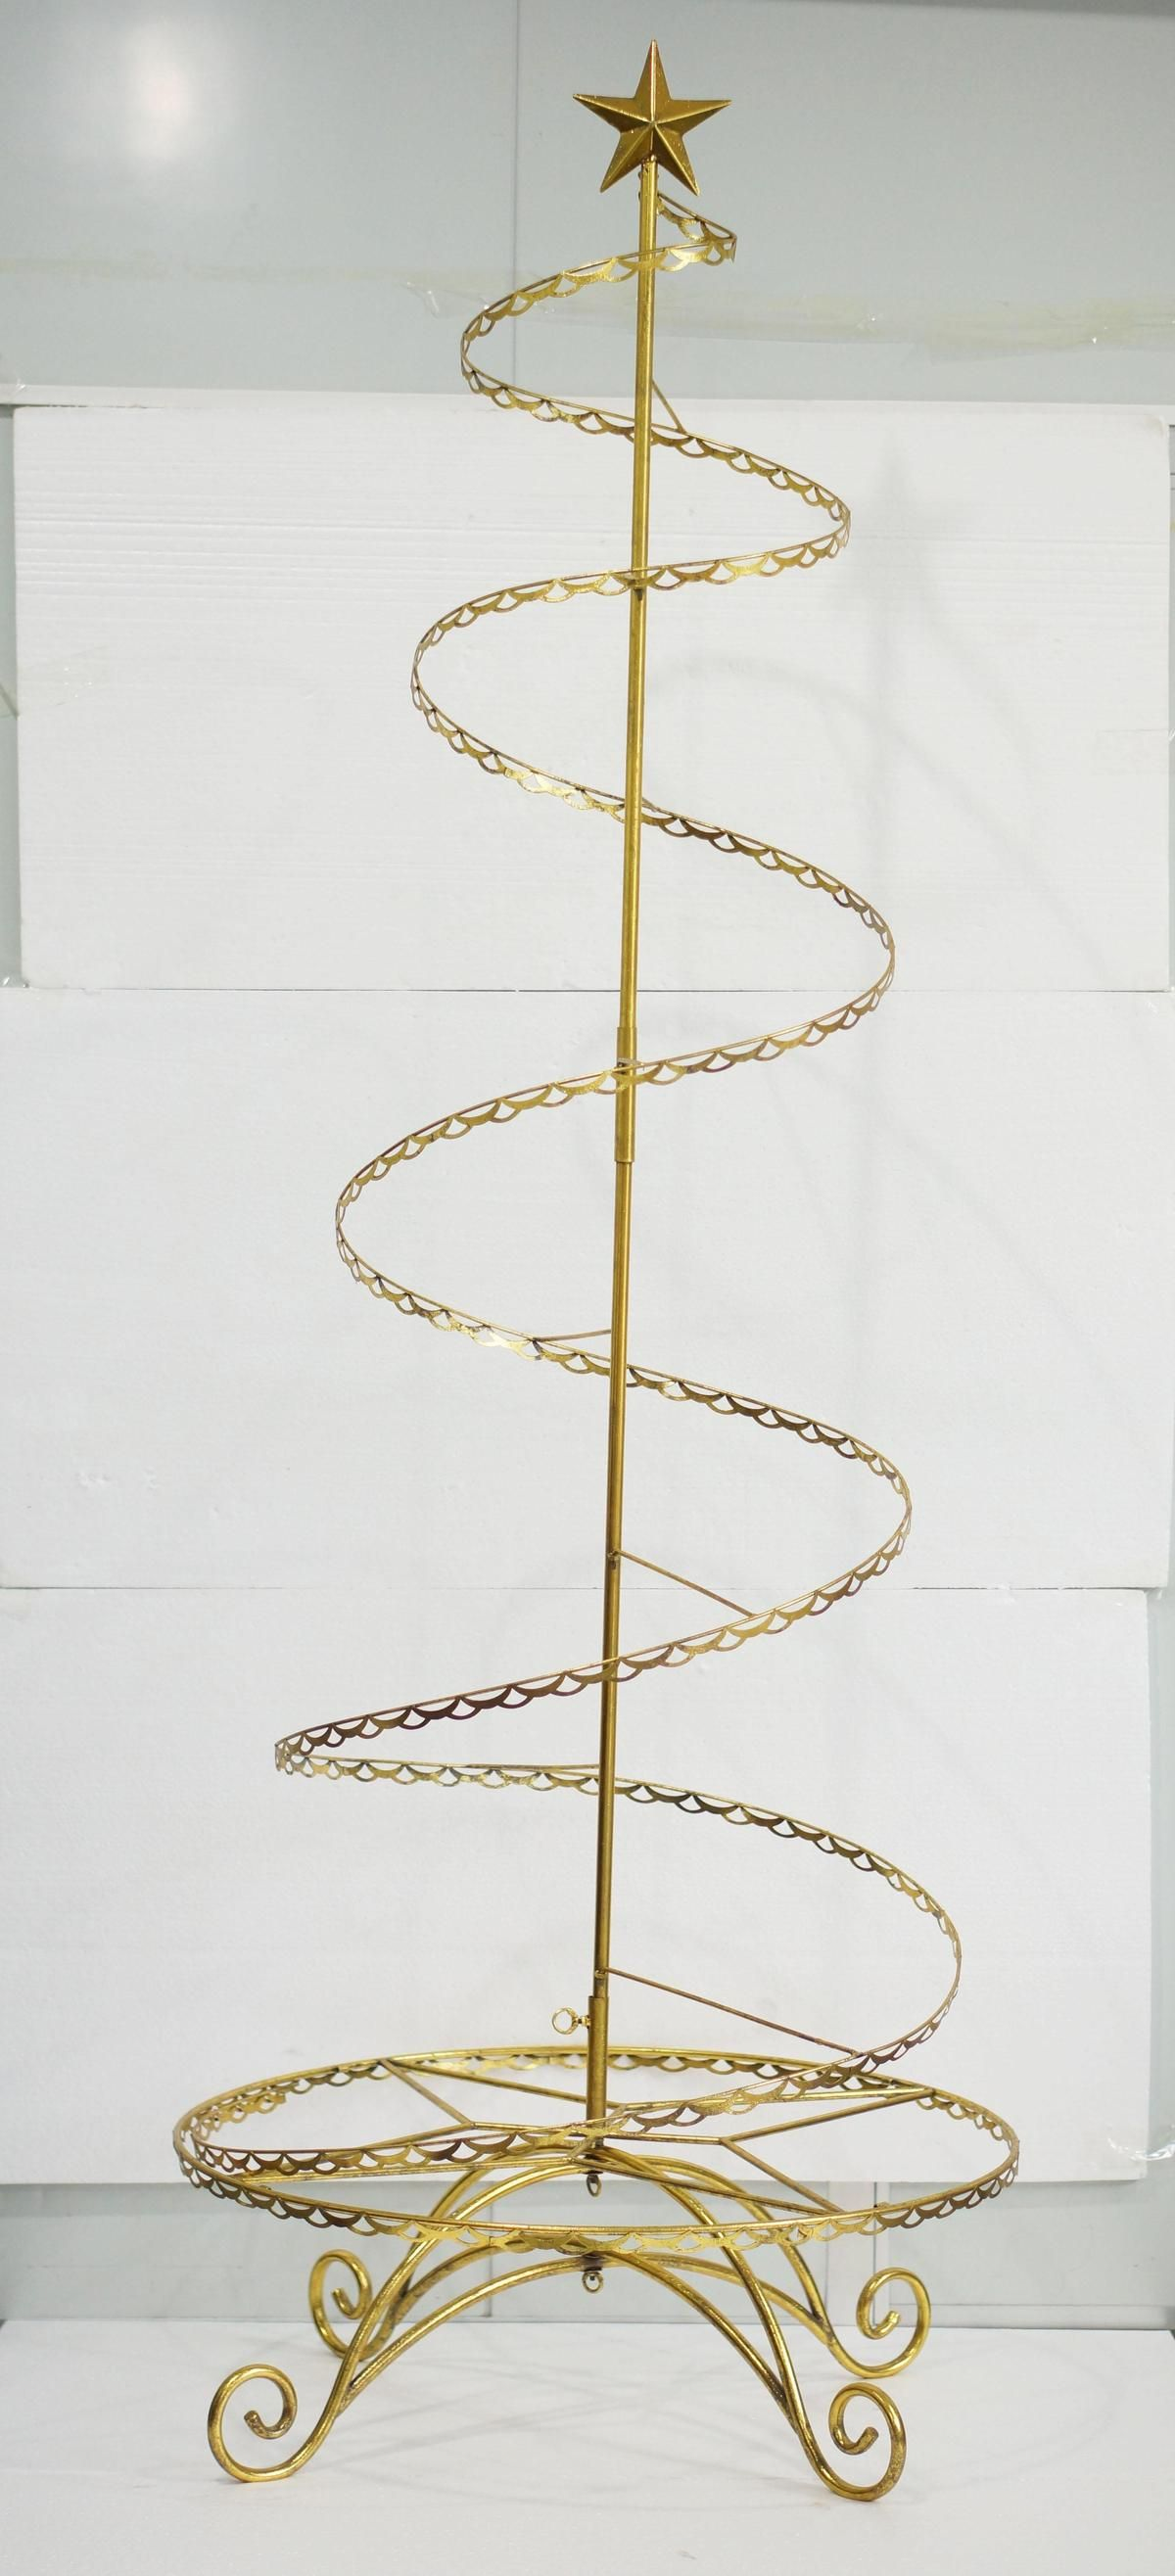 Gold Spiral Wire Ornament Tree In 2020 Wire Ornaments Ornament Tree Display Ornament Display